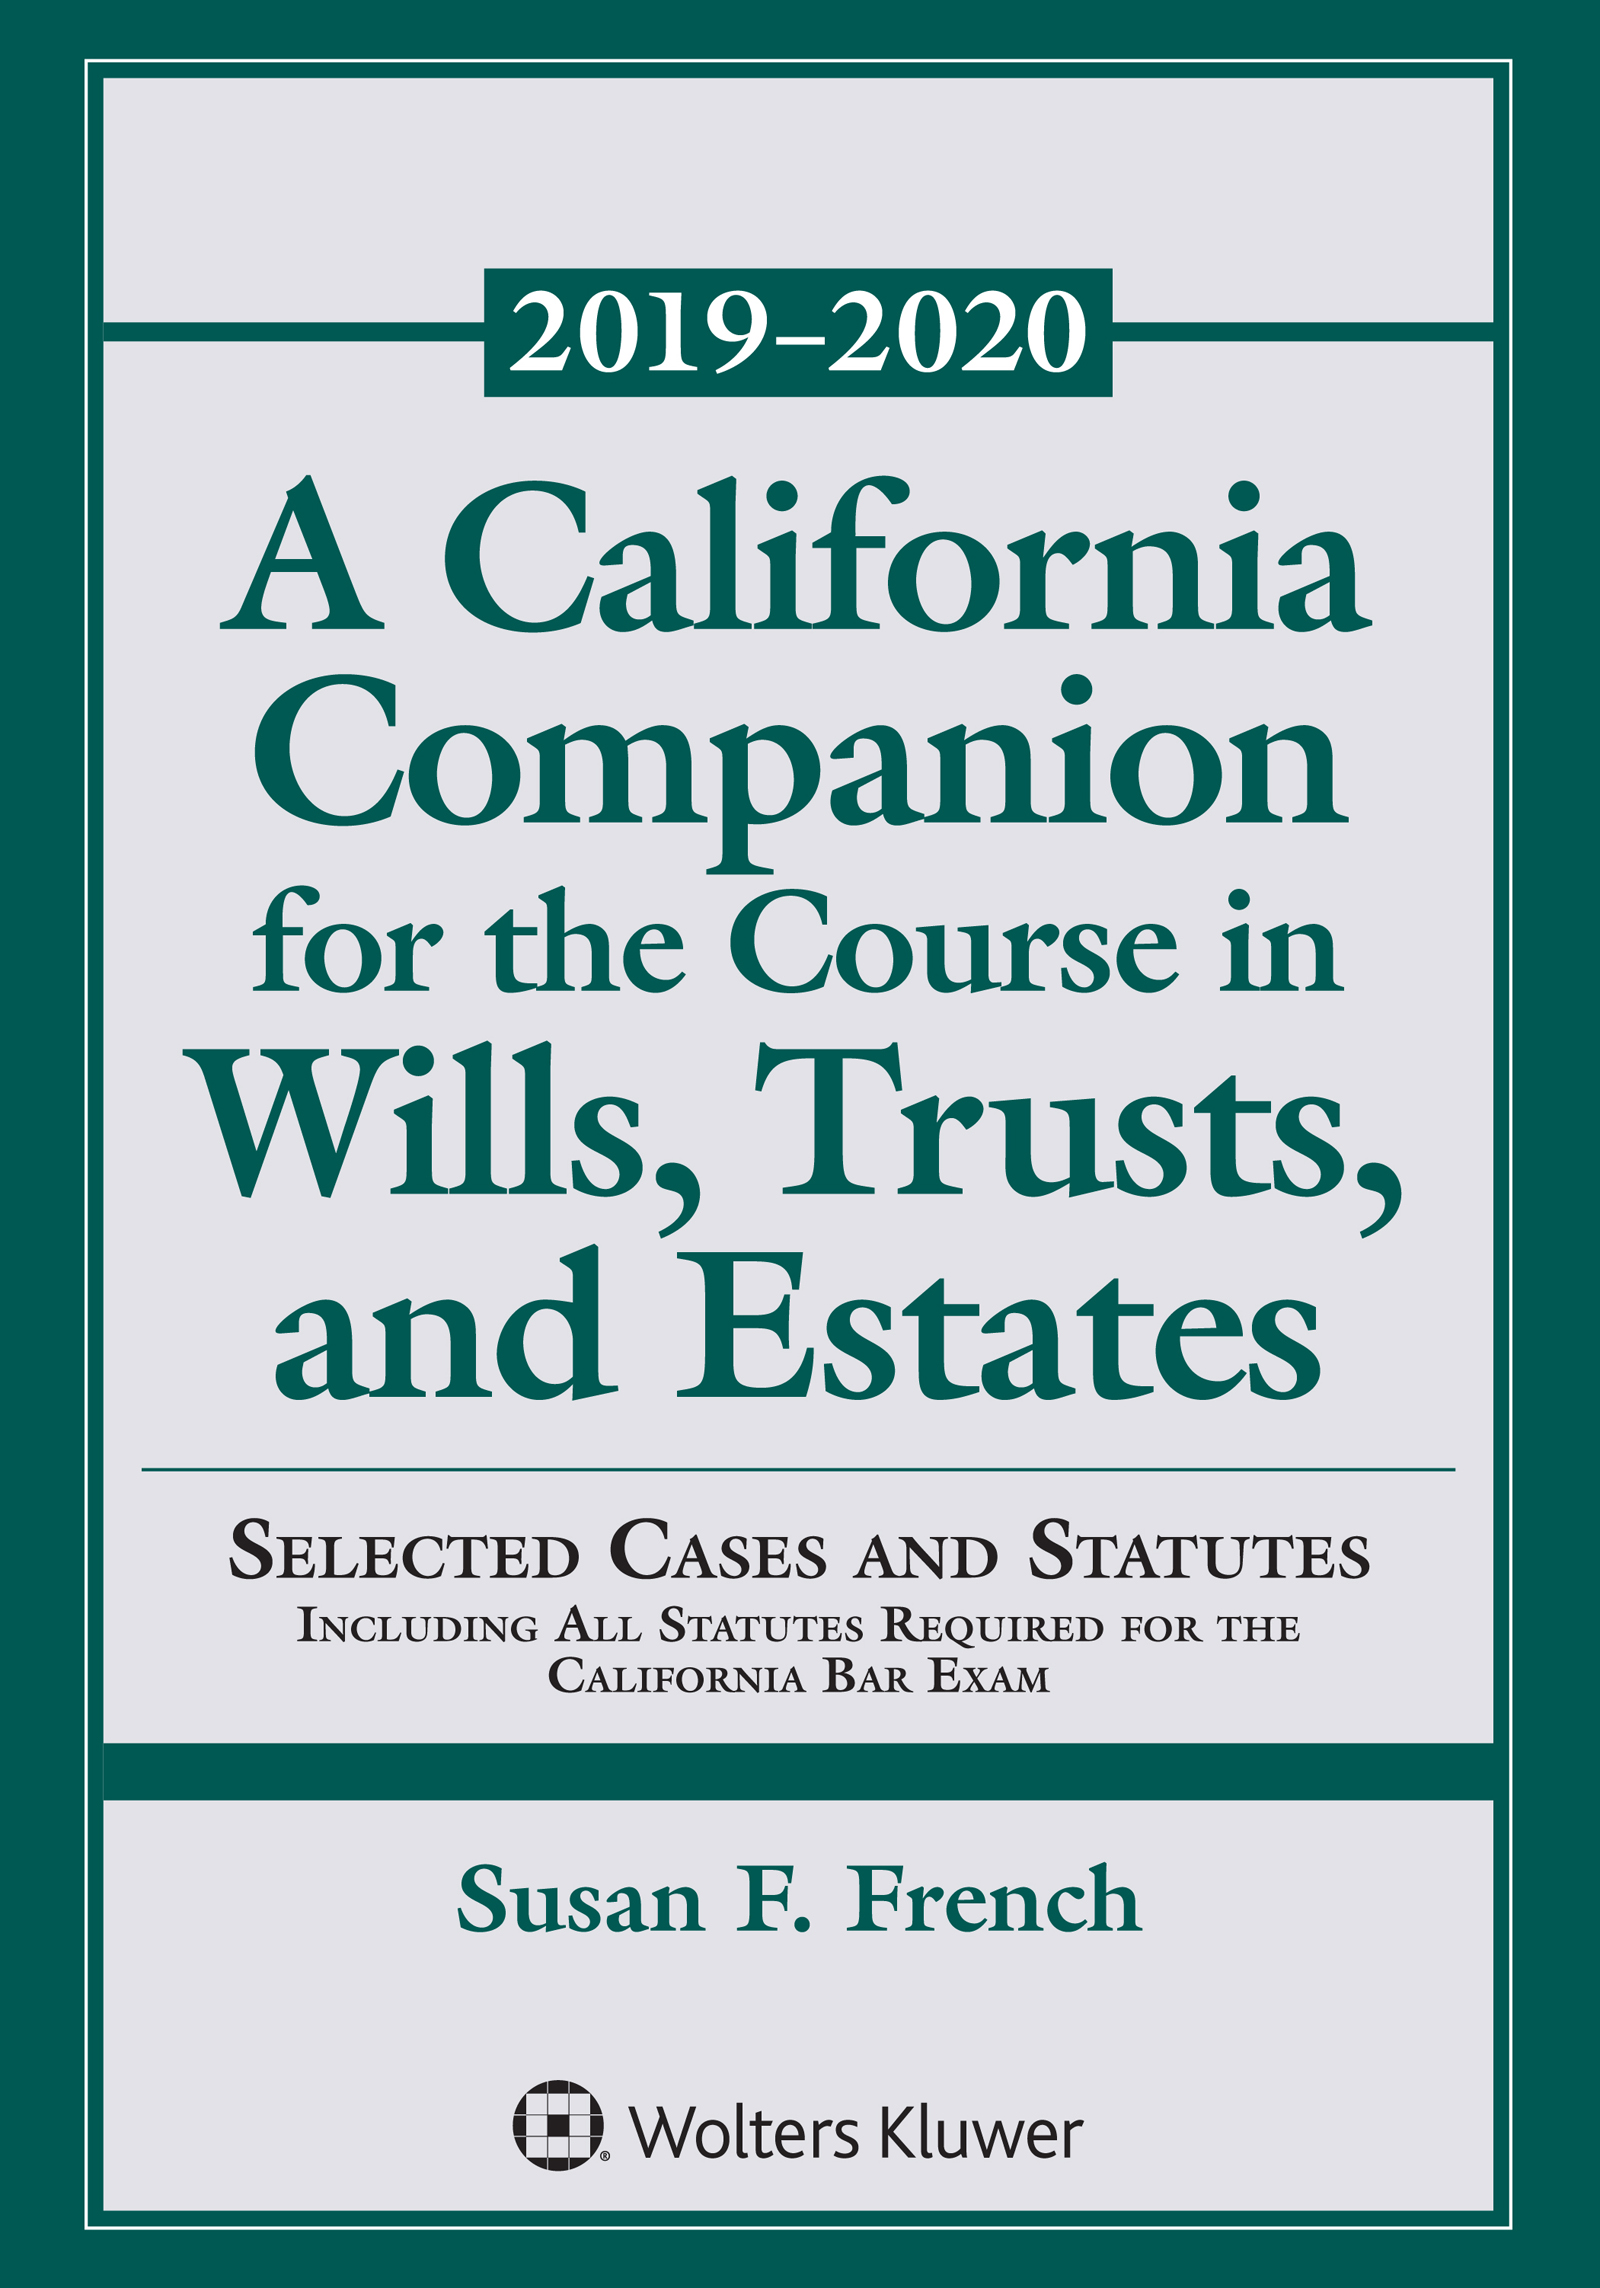 A California Companion for the Course in Wills, Trusts, and